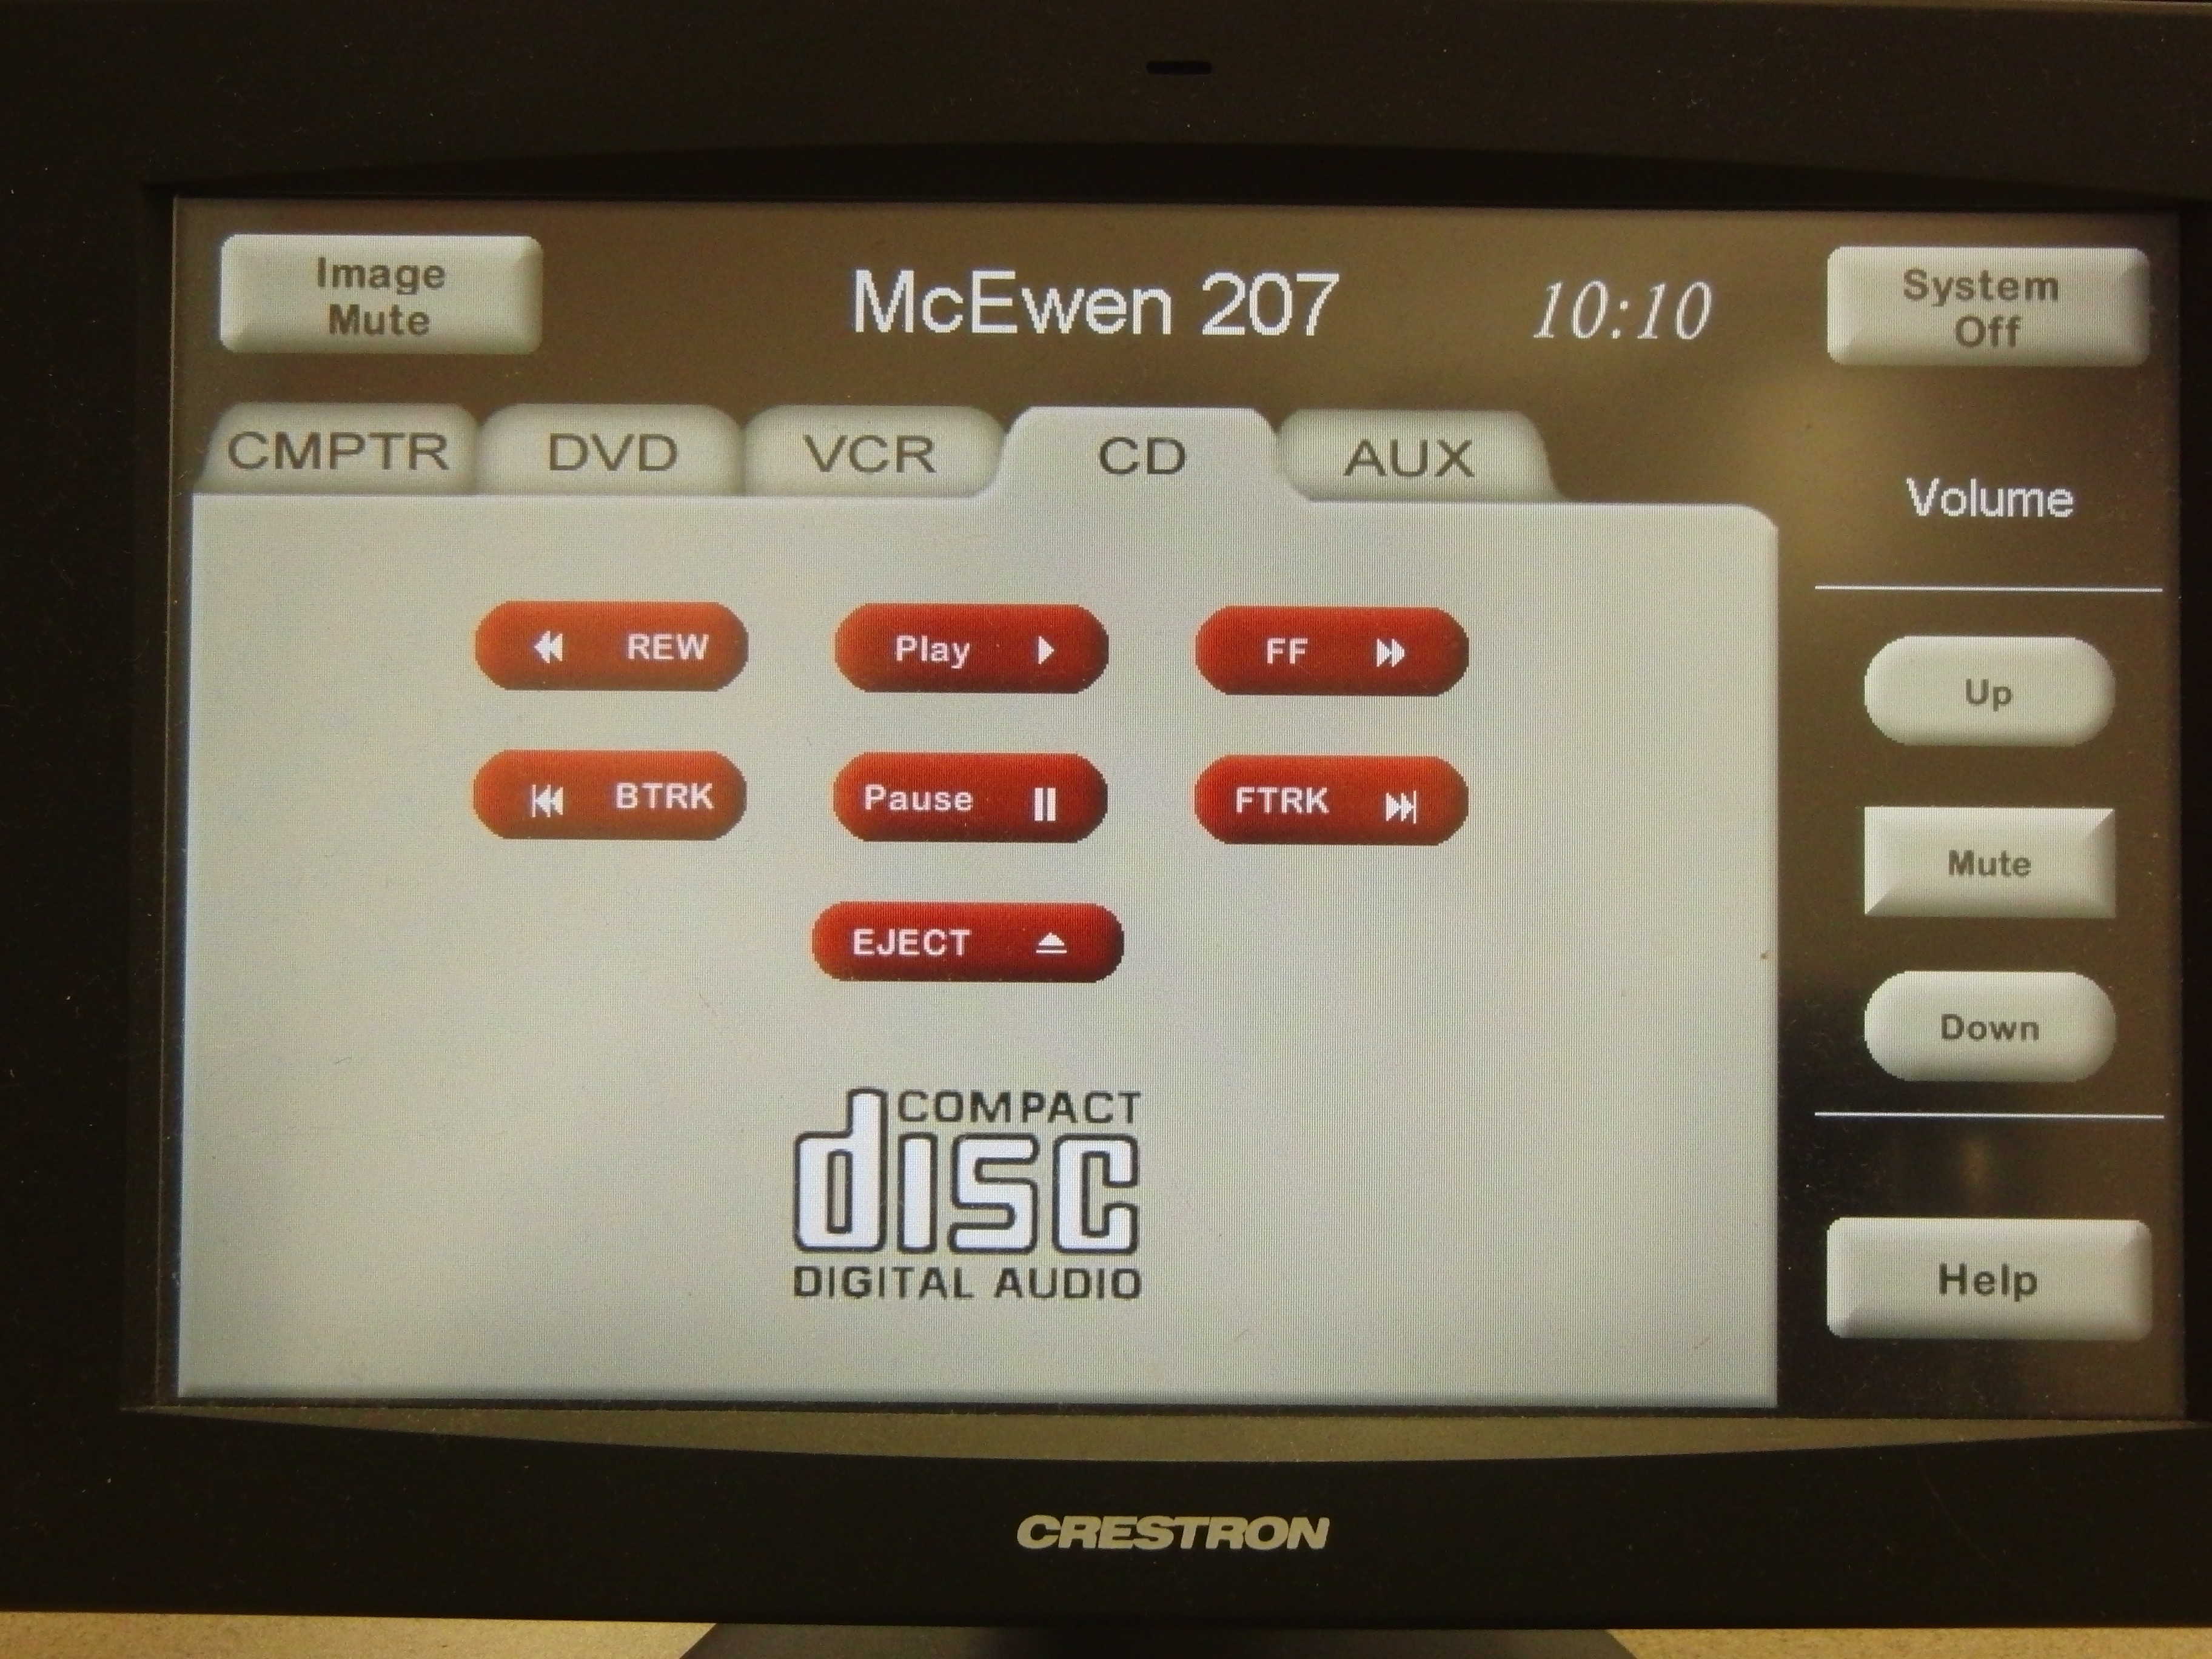 Photo of crestron control touch panel with the CD tab active